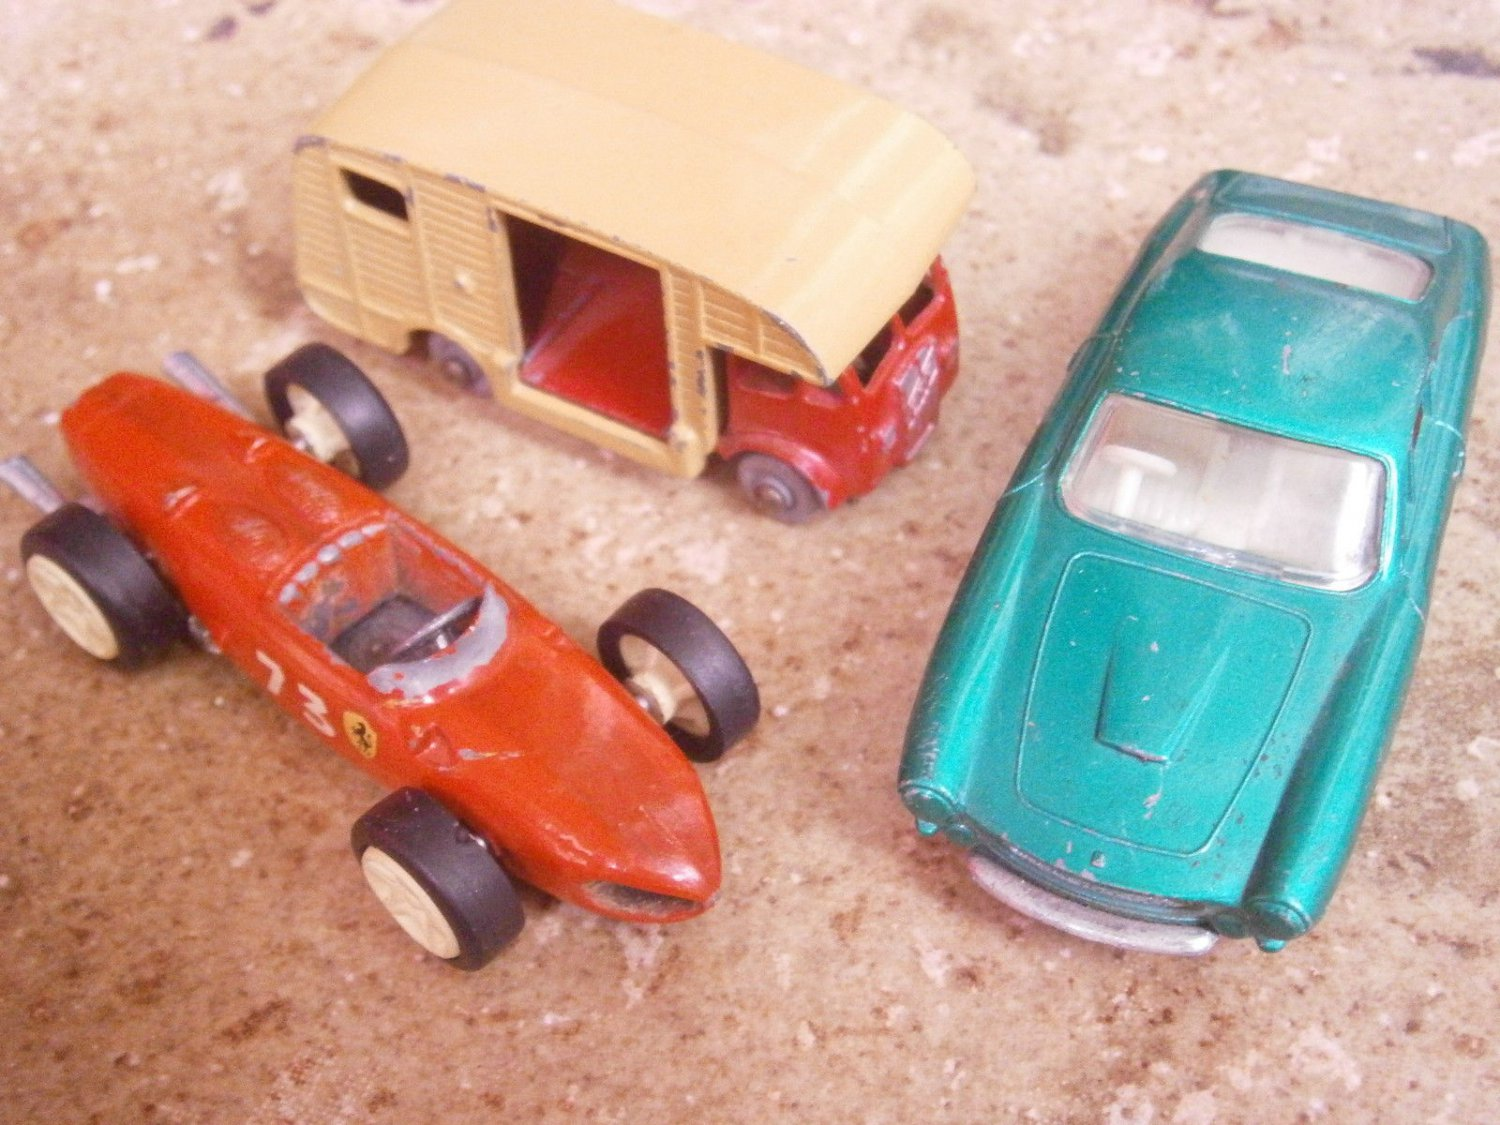 3 CARS models by Marshall Lesney England HORSE Box 35, FERRARI 73 and 75 Originals 1960s